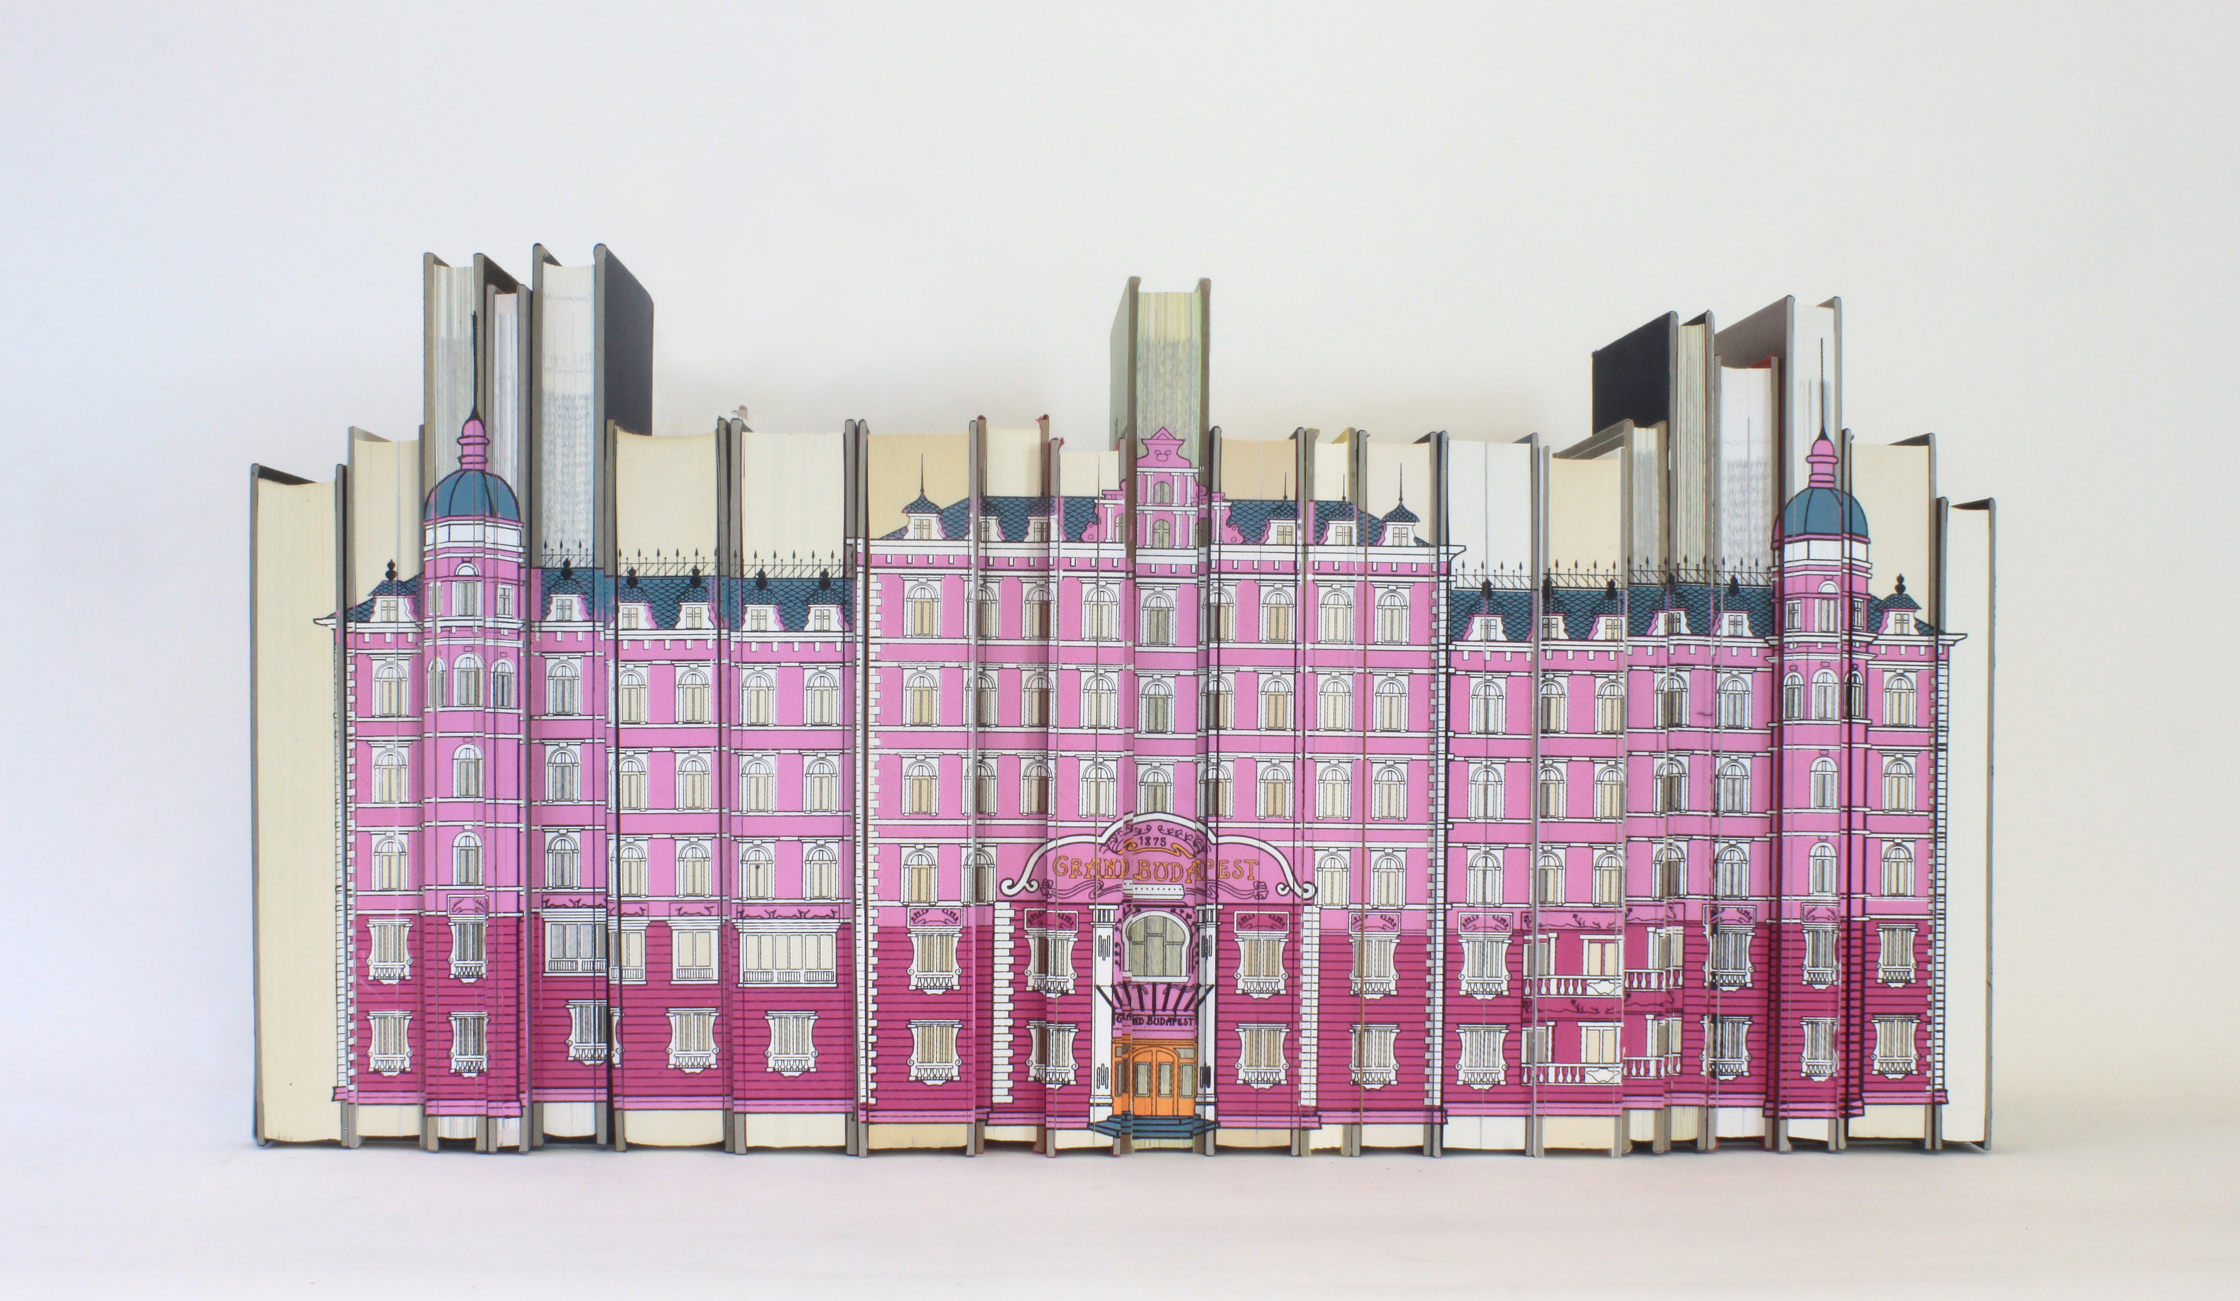 Grand Budapest Hotel 2 Wes Anderson Book Block